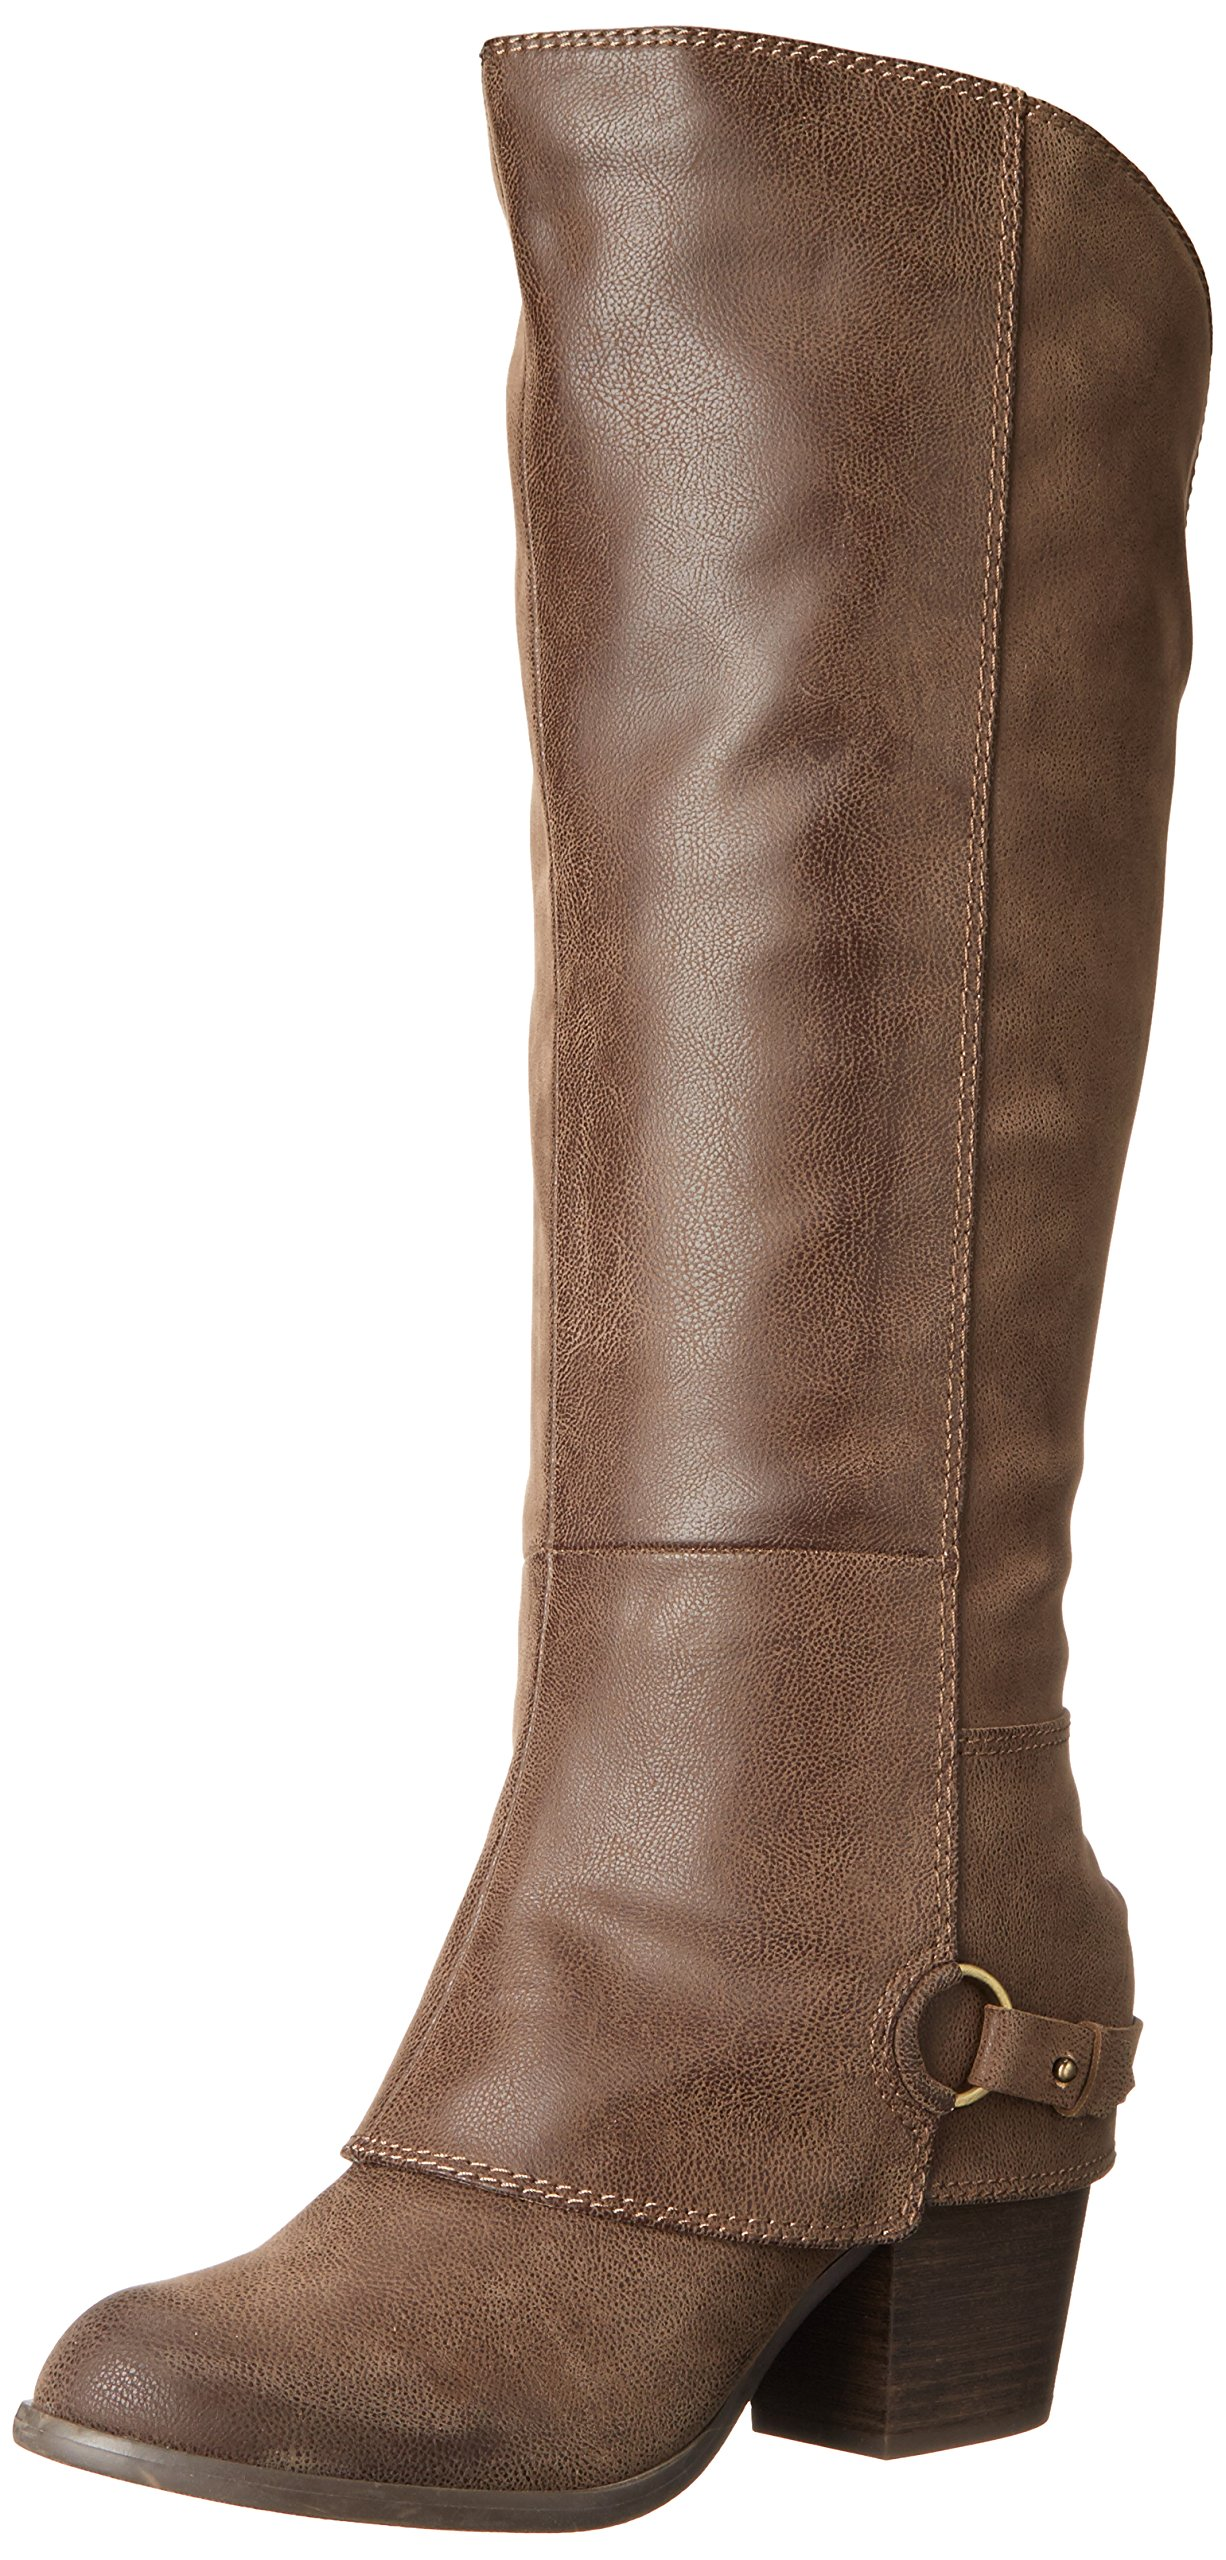 Fergalicious Women's Lexy Harness Boot,Taupe WC, 7.5 M US